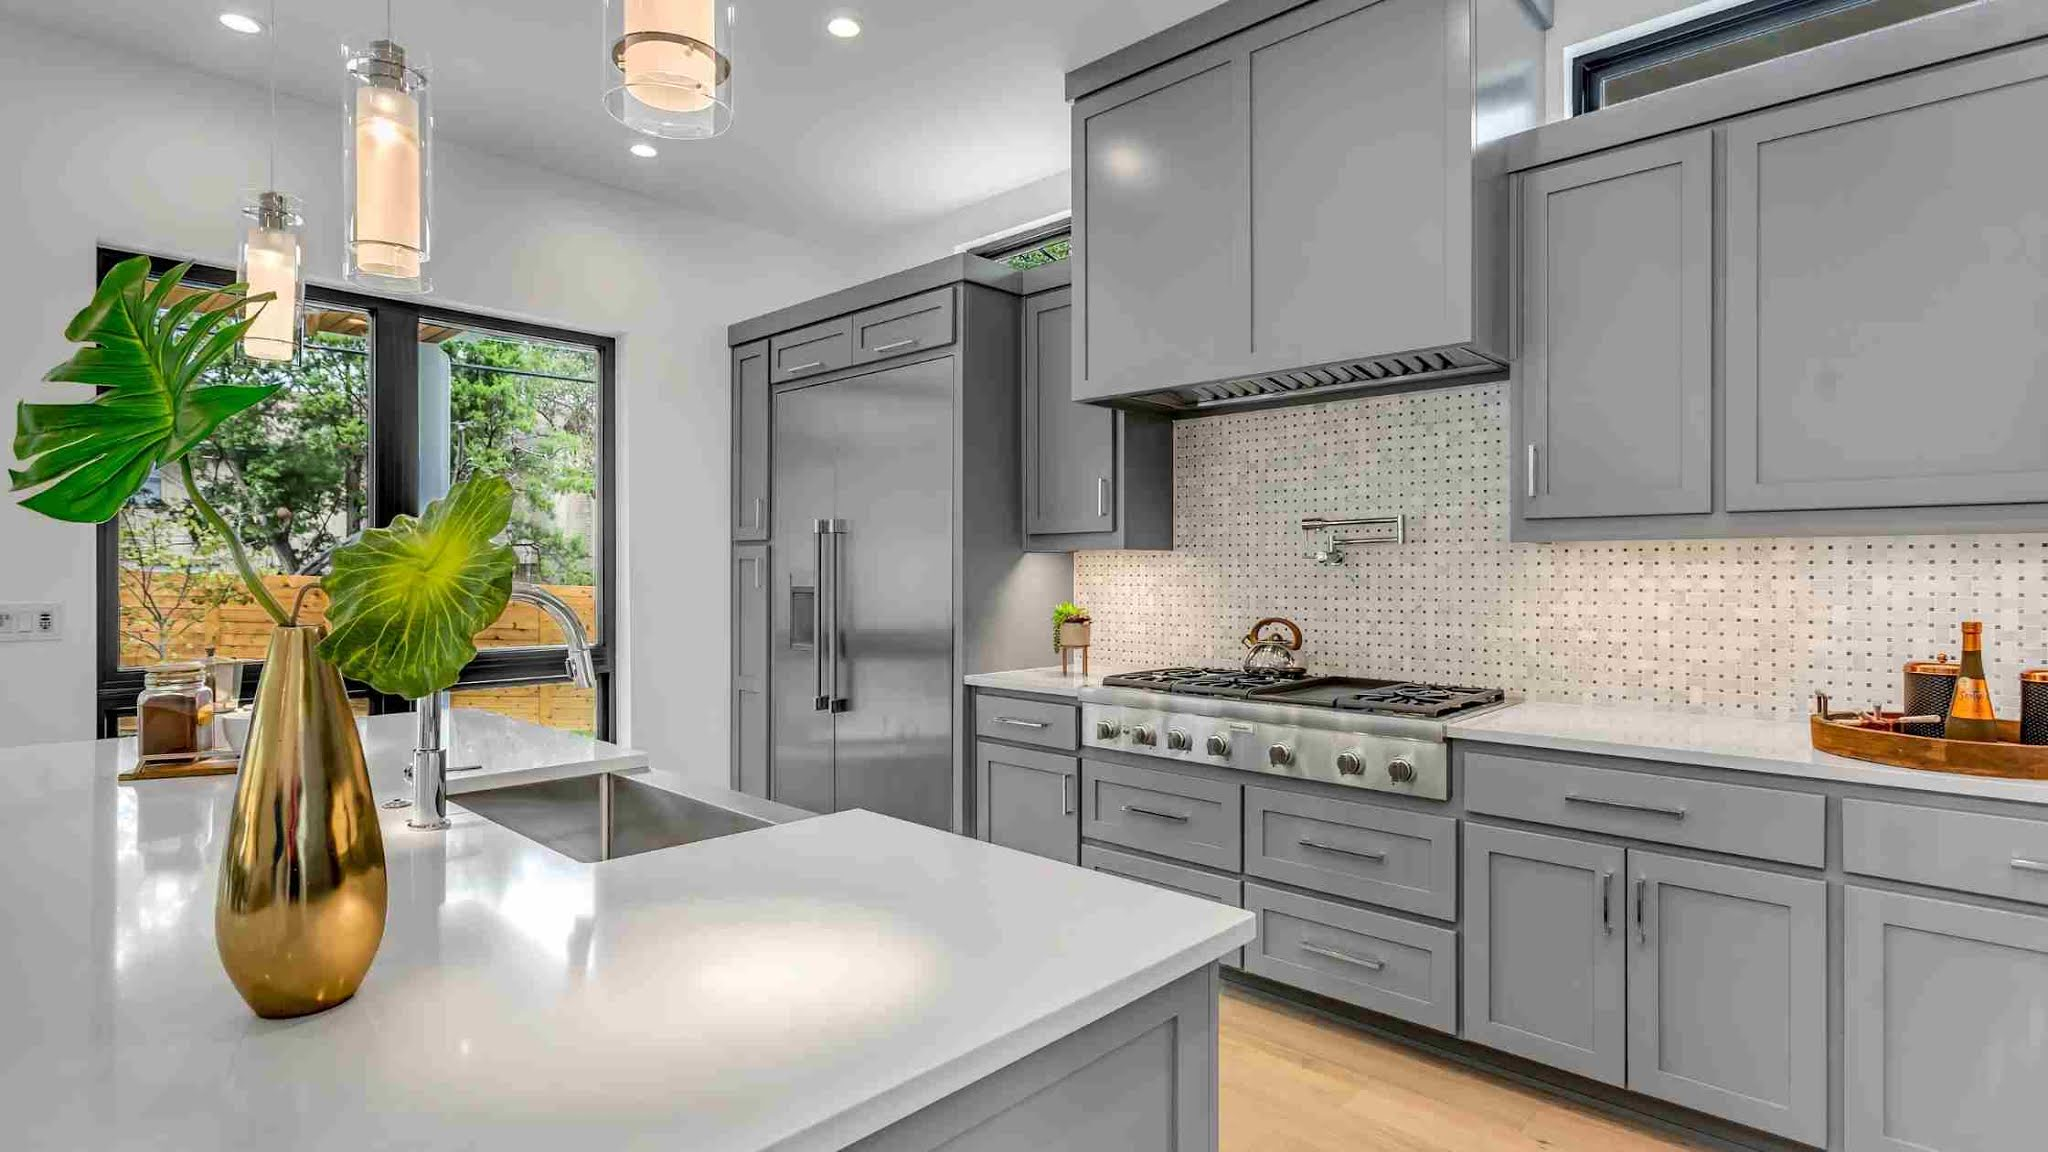 How To Improve The Cleanliness Of Your Kitchen